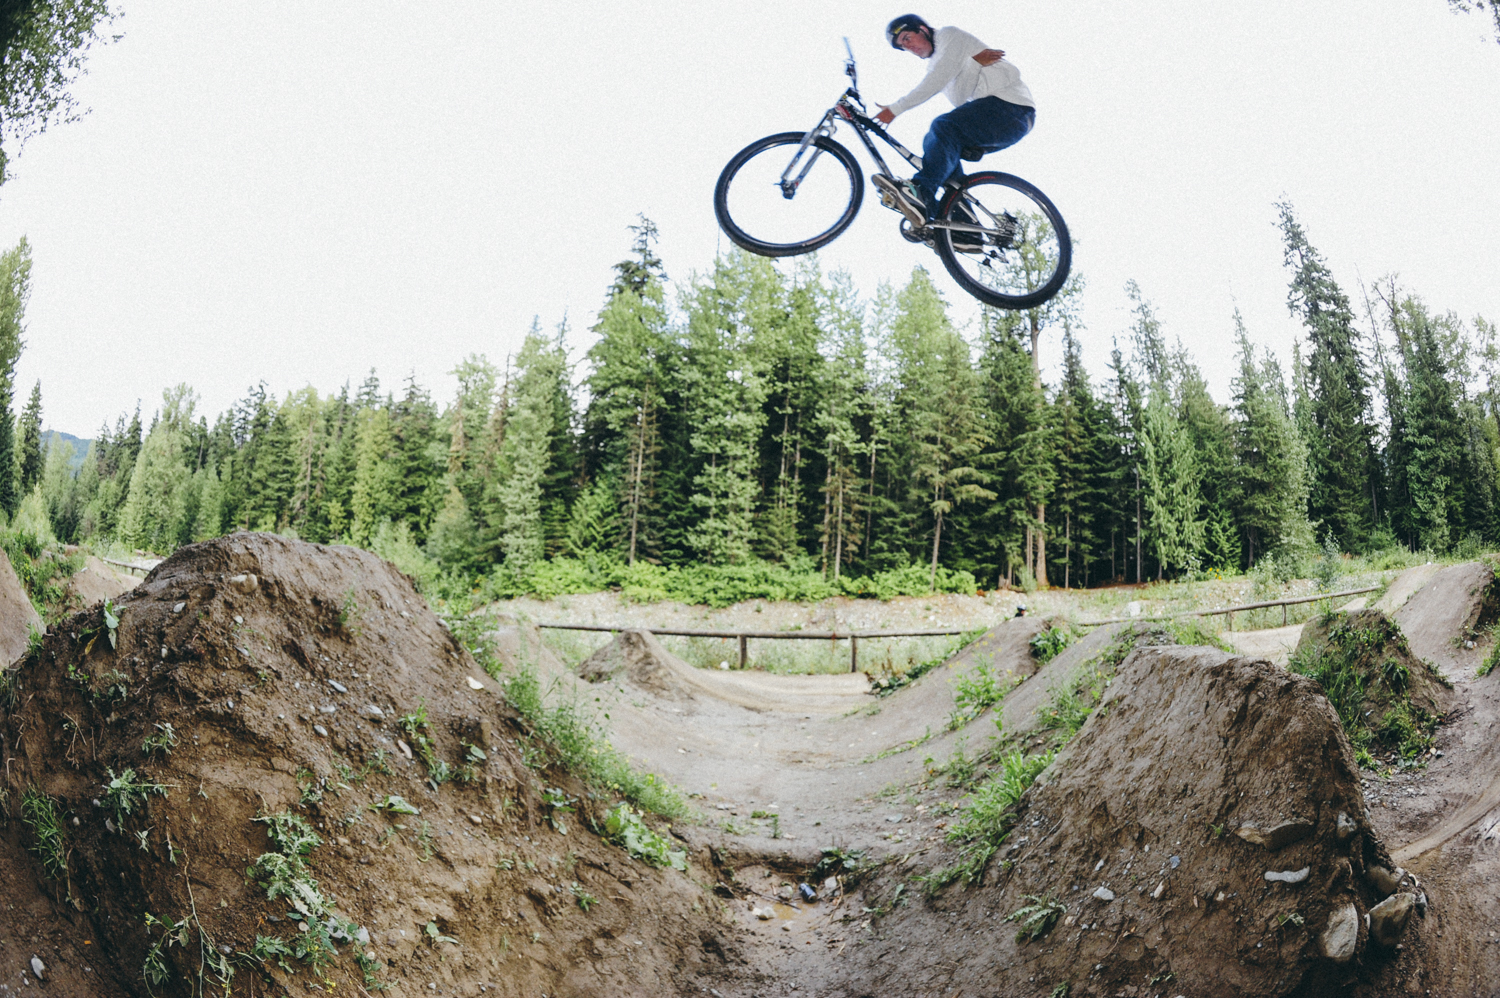 Ryan Howard, barspin at the River Jumps in Whistler.